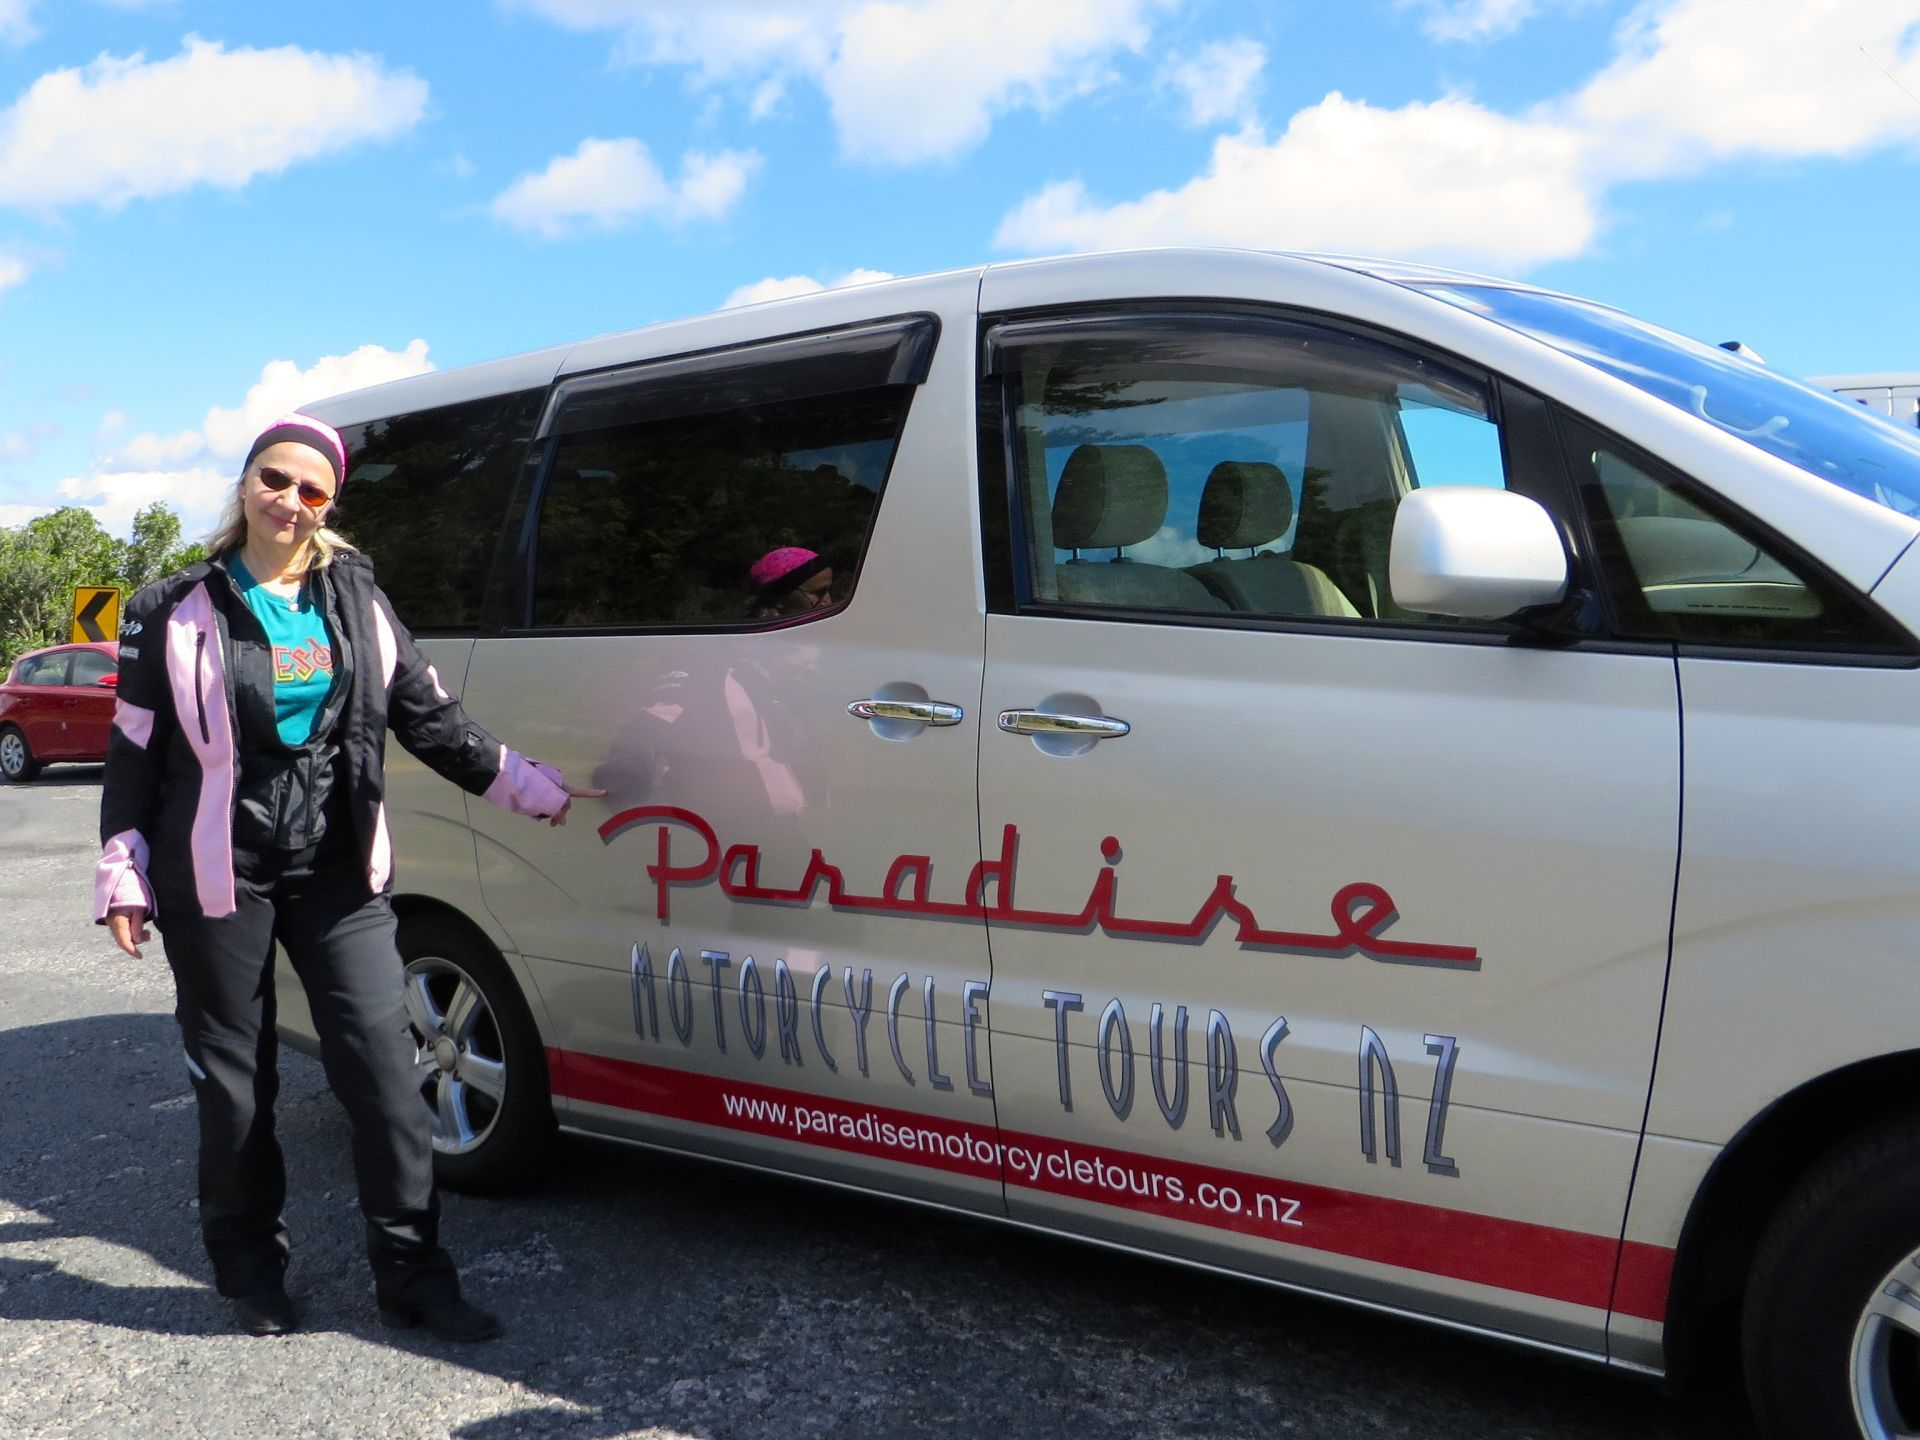 About Paradise Motorcycle Tours New Zealand